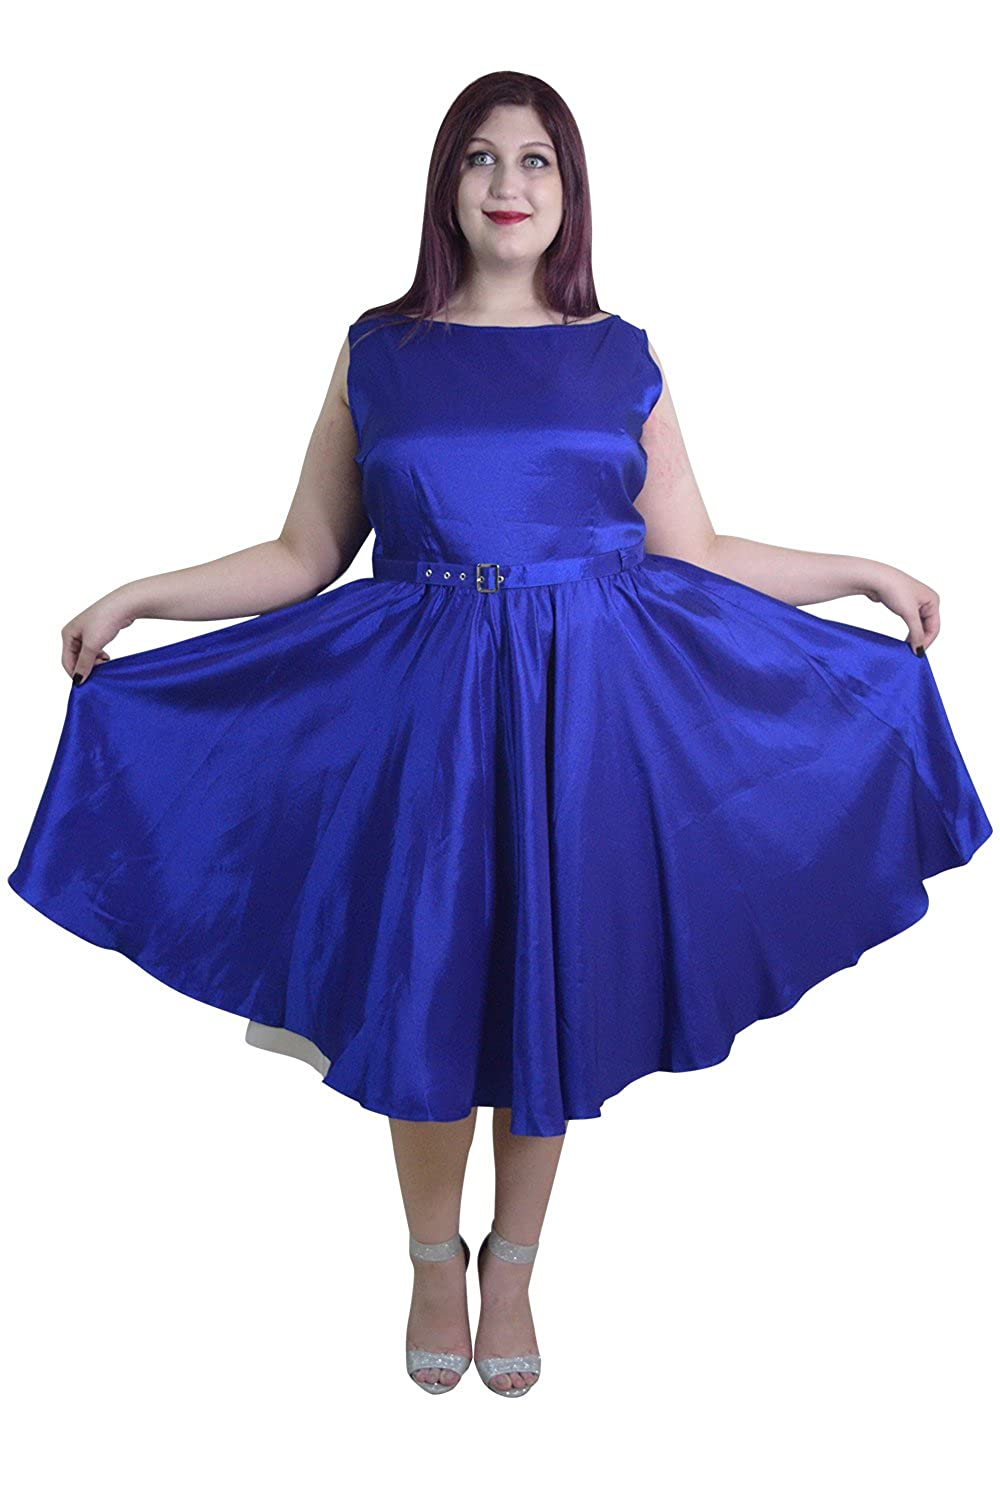 Skelapparel Plus Rockabilly Pinup Deep Blue Satin Cocktail Flare Party Swing Dress